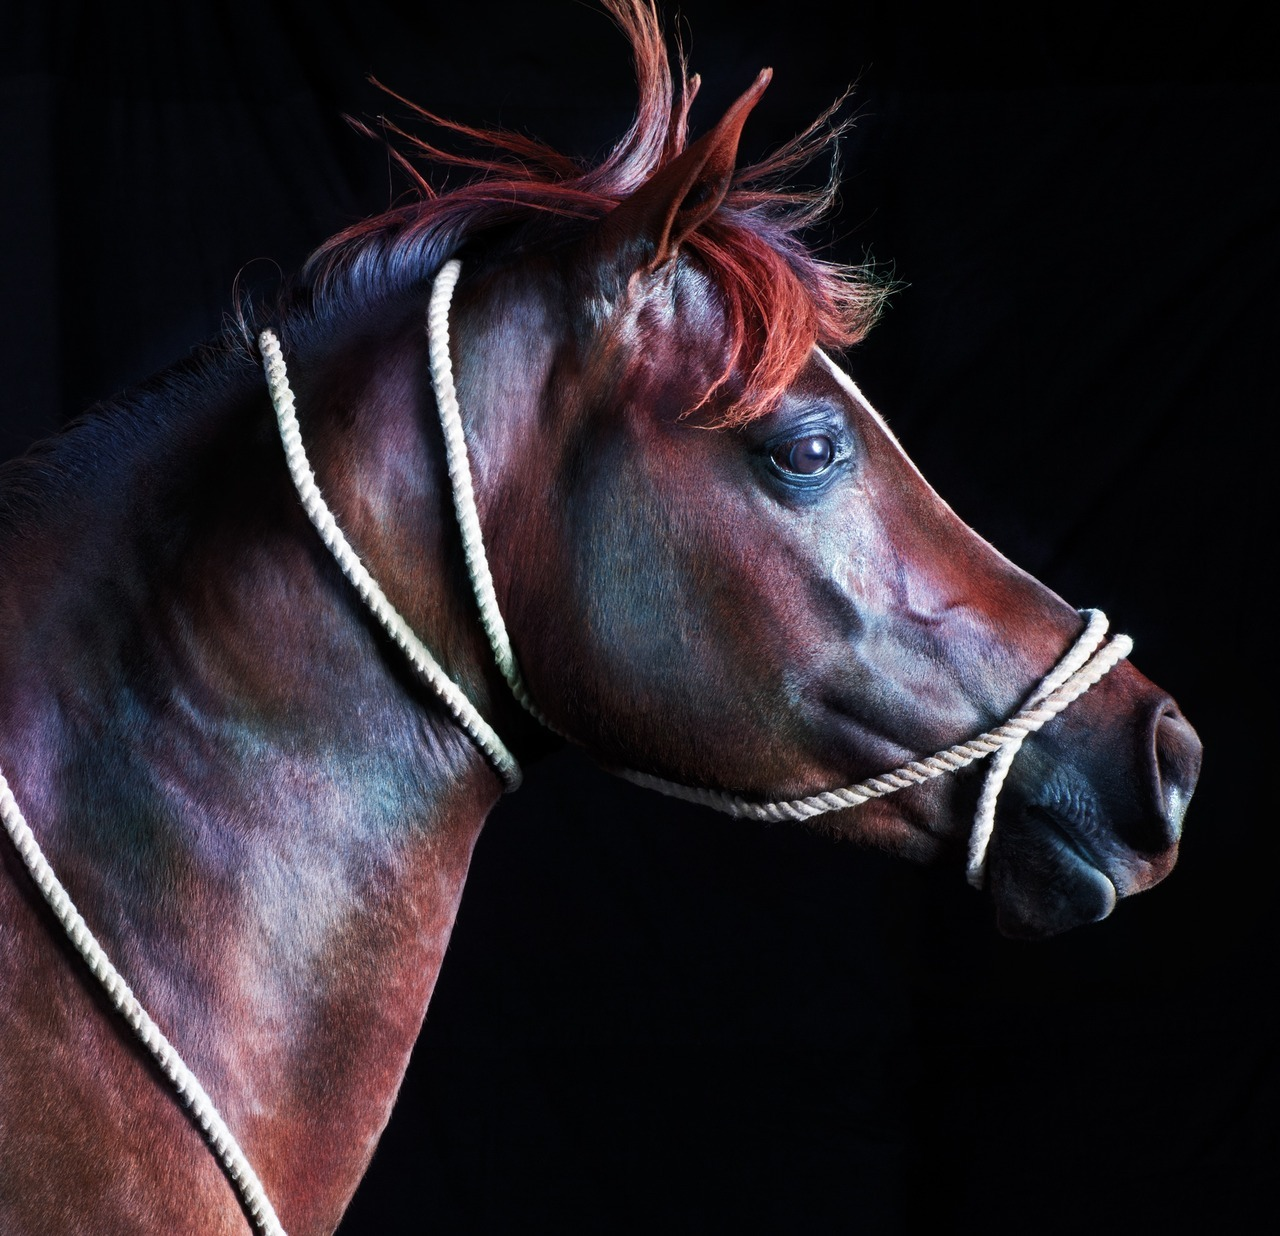 "Jill Greenberg on Capturing the Horse as Supermodel One might say there are two Jill Greenbergs. First, there is Jill Greenberg the commercial photographer: She's done work for corporations like Disney and Coke; her editorial photos have appeared on the covers of Time, Fortune, New York, and others. But it's Jill Greenberg the artist who gets people talking. From sinister shots of John McCain under the text ""WARMONGER"" to closeup portraits of children crying (after being offered candy and then having it snatched away), her images have been called ""repulsive,"" ""grotesque,"" and have elicited death threats. Her latest project, a book called Horse, is more, shall we say, tame.  You were harshly criticized for the McCain photos you took during the last election, under a strobe light, which made him look almost devil-like. It was an Atlantic assignment, but you doctored the outtakes as an art piece. Was it hard to find editorial work after that? That incident's backlash really surprised me, considering I delivered their cover image exactly to their specifications. I don't really know, but I think the Atlantic was afraid that McCain might be elected and needed to cover themselves. Photographers own all their images when shooting for magazines. The contract actually said you will use all means within your reach to publicize the images and shoot, including your own website, which is where I posted my agit-prop political cartoons. The incident got them an unbelievable amount of traffic, right before they relaunched the magazine with a redesign.  But could you understand the journalistic shock? What I did was an outside-the-box thing to do. But political cartoons are everywhere. It didn't occur to me that I was not allowed to have a voice … I thought of the McCain thing as the artist Jill Greenberg appropriating the photographer Jill Greenberg's work. Obviously some others did not agree. Your latest project focuses on glossy portraits of horses. Why? My obsession with horses began at the early age of six. I drew them, painted them, sculpted them, collected plastic models of them, read stories about them, and rode them. When I saw the same happening with my young daughter, I decided it was time to return to my primary muse. What is it that makes young girls project so much onto these gorgeous animals? You've said you tried to capture the horses like supermodels. What exactly does that mean? The horses were cast for their physiques, muscle tone, figures, and long flowing manes. The photographs focus on the animal's body; on cut, striated muscles under shiny, cropped hair; on crimped manes and windswept forelocks; on the strong shoulders and hindquarters. The images are incredibly detailed. How did the shooting process compare to other animals you've photographed? It was a nightmare. Horses are much more dangerous than trained bears and young apes. Most of the horses were not trained to be photographed at all, unlike almost every single animal I had photographed previously. We all got covered in dirt and dust … the cameras and computers got quite dirty. The lights had to be fenced off to protect them from horses if they decided to bolt. You've got another project at the moment — a gallery show called Legitimate Rape. That's quite a title.  My husband actually thought up the name. I am one of six artists who are showing at the Katherine Cone Gallery in LA. I'm exhibiting a video piece I shot in April with the phantom camera, so it records very slow motion. I hired seven older white men and dressed them in suits. I wanted them to look like rich assholes and directed them to laugh directly into the camera with contempt and mockery. The work was projected onto a steakhouse during the RNC. Does it ever bother you to be at the center of such controversy? It's quite stressful, yes, and it's unpleasant to receive death threats, comments about your children, comparisons to Hitler and Michael Jackson. — Jessica Bennett"